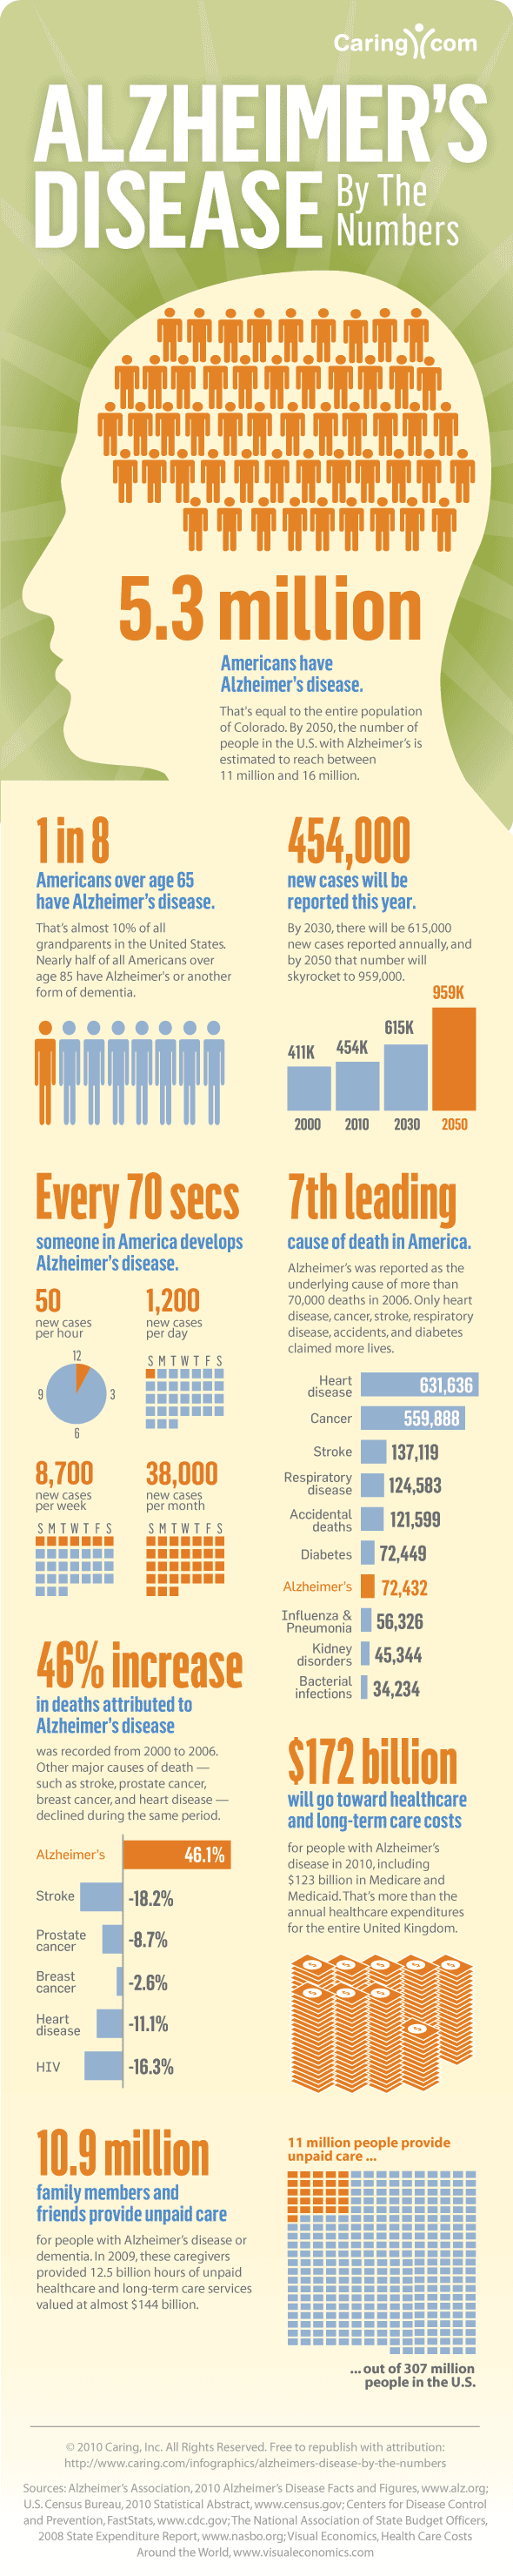 Alzheimer's Disease By The Numbers Infographic by Caring.com